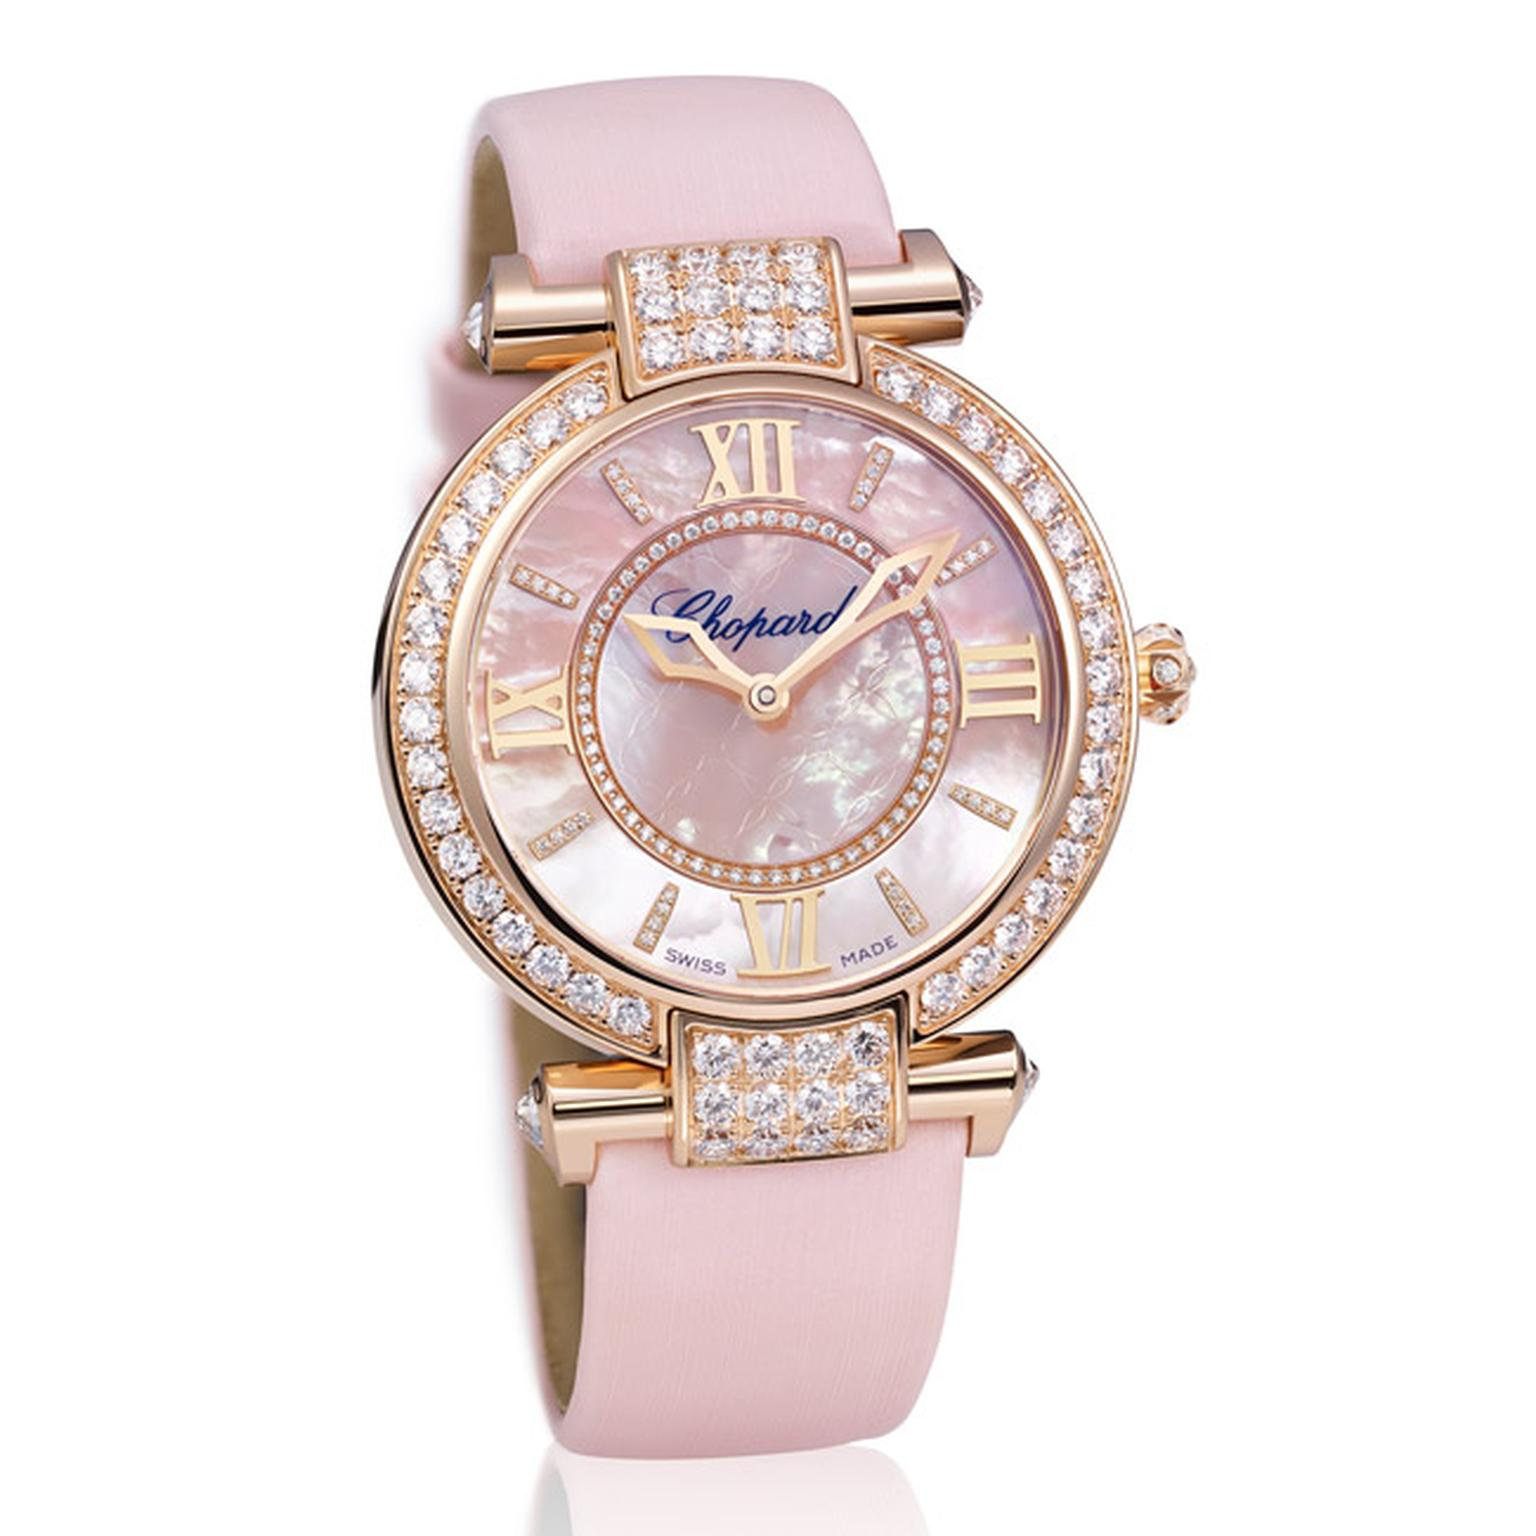 Chopard-Imperiale-Pink-Watch-Main